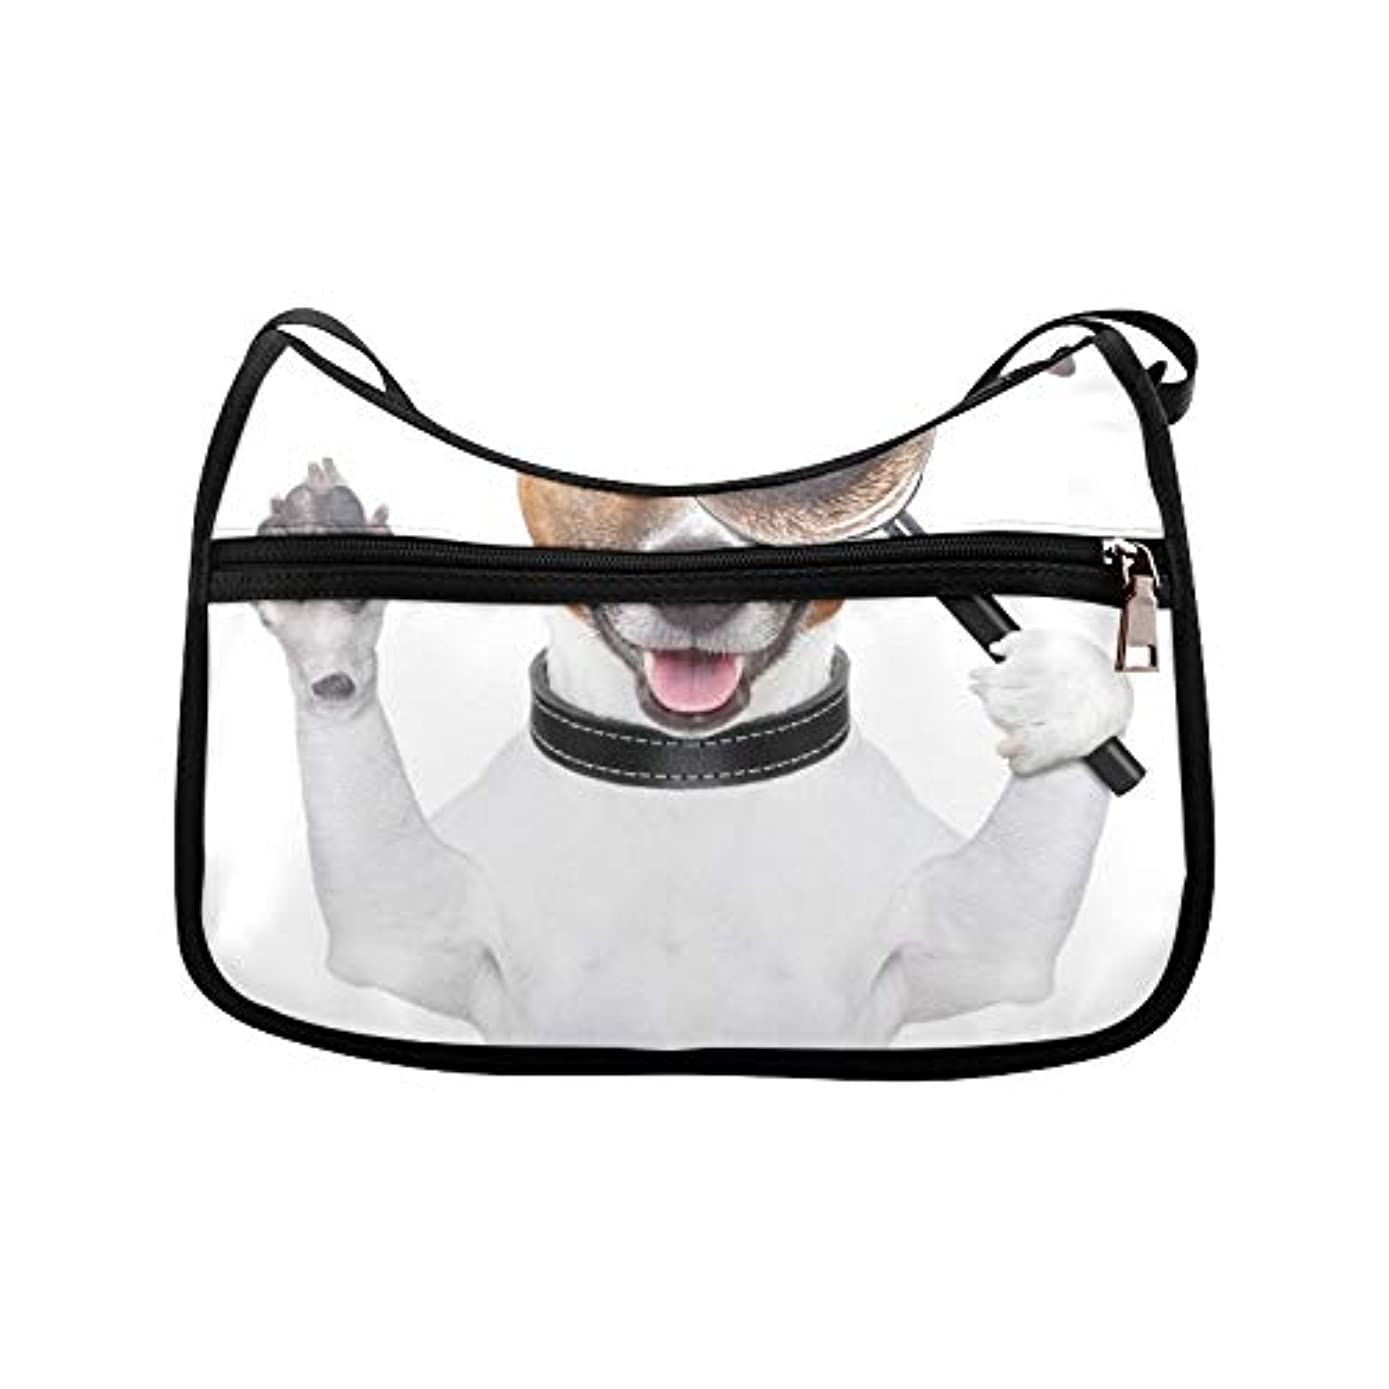 Dog With Magnifying Glass Messenger Bag Crossbody Bag Large Durable Shoulder School Or Business Bag Oxford Fabric For Mens Womens